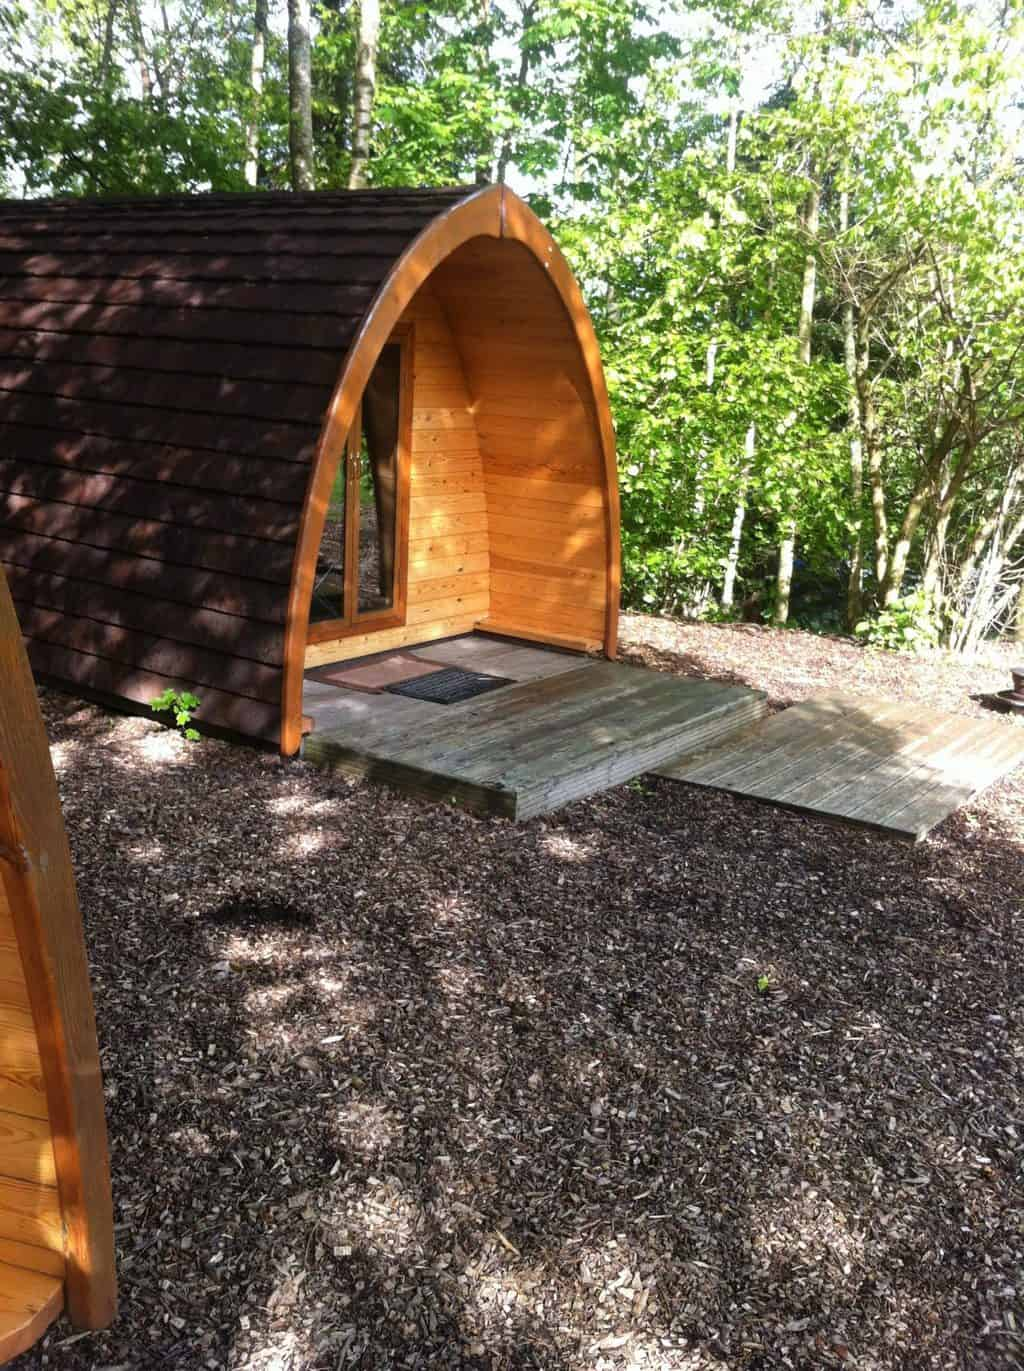 A glamping hut in the lake district. It is a curved wooden building that looks like a curved shed.